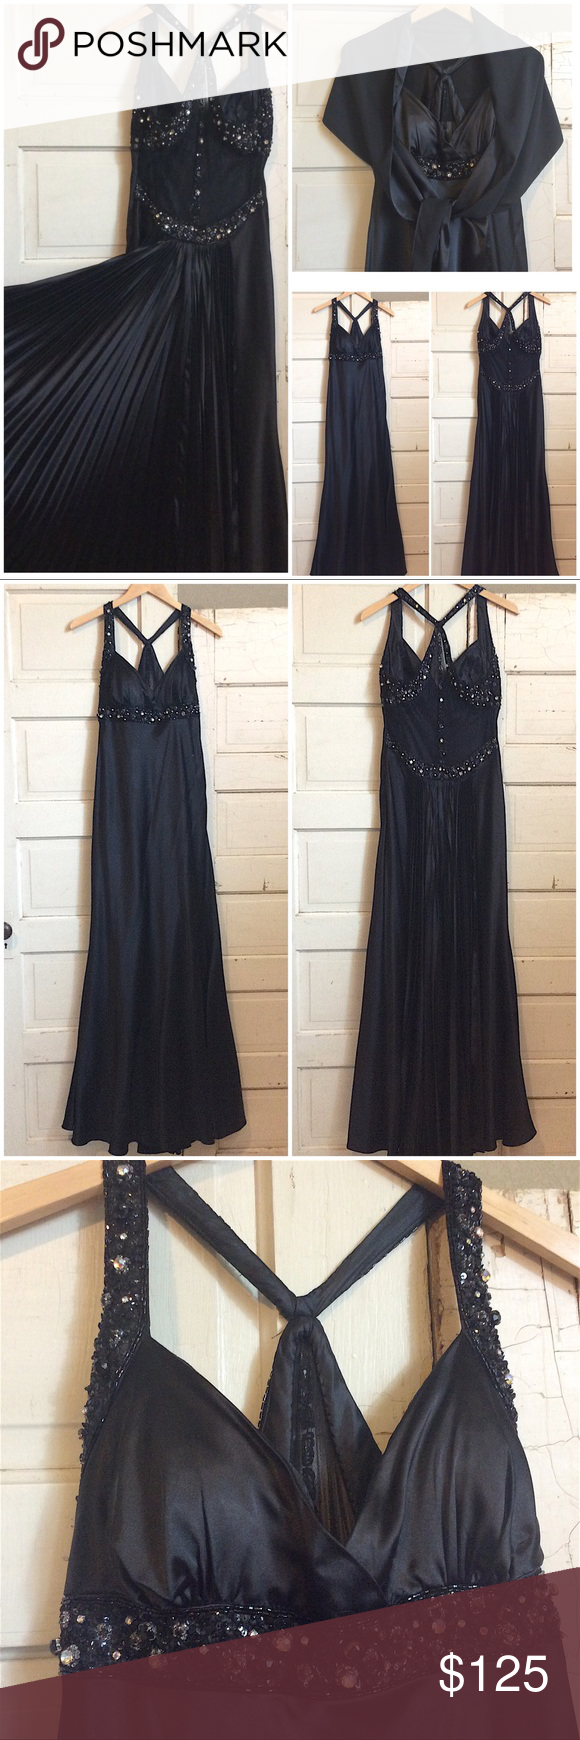 Prompageant dress with accordion back panel in my